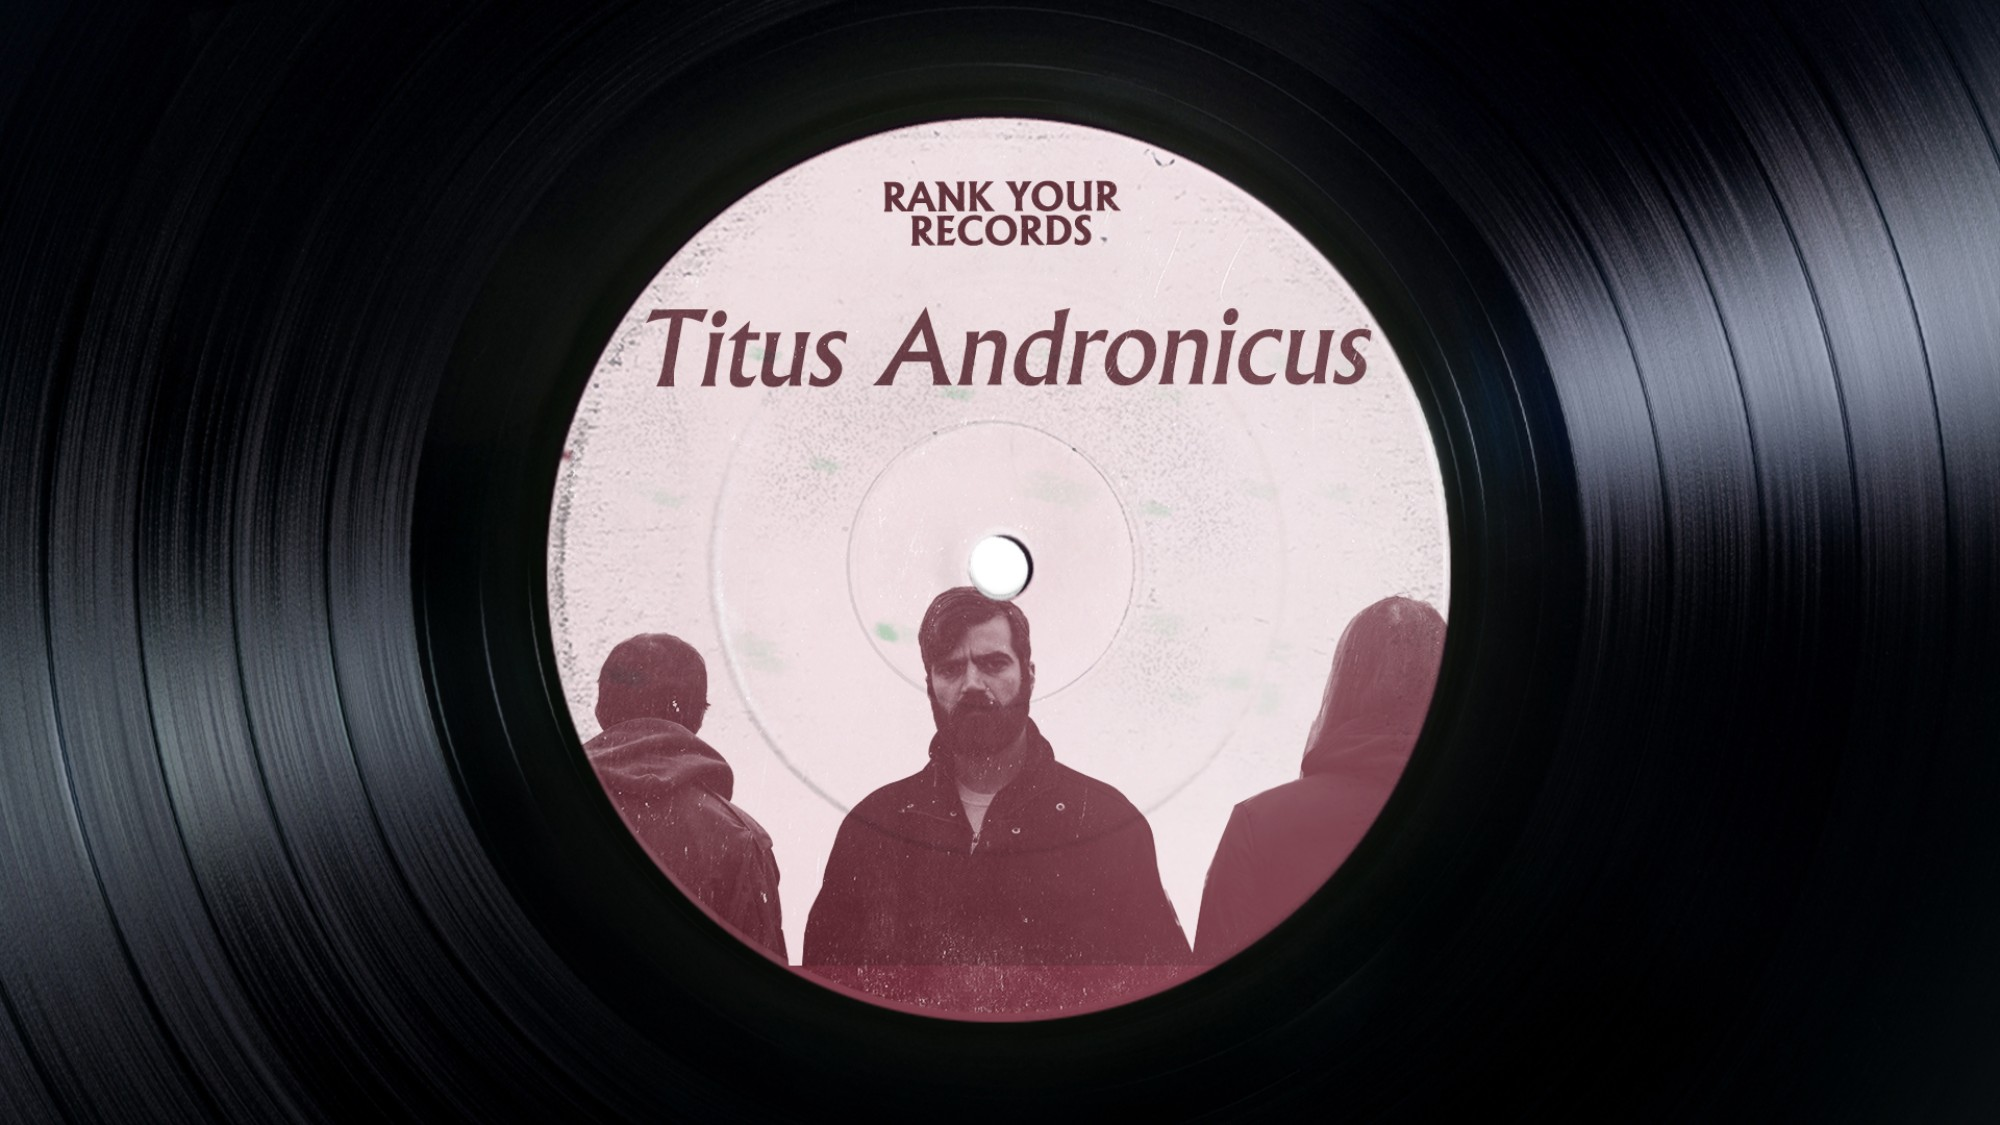 Titus Andronicus' Patrick Stickles Ranks All of the Band's Records